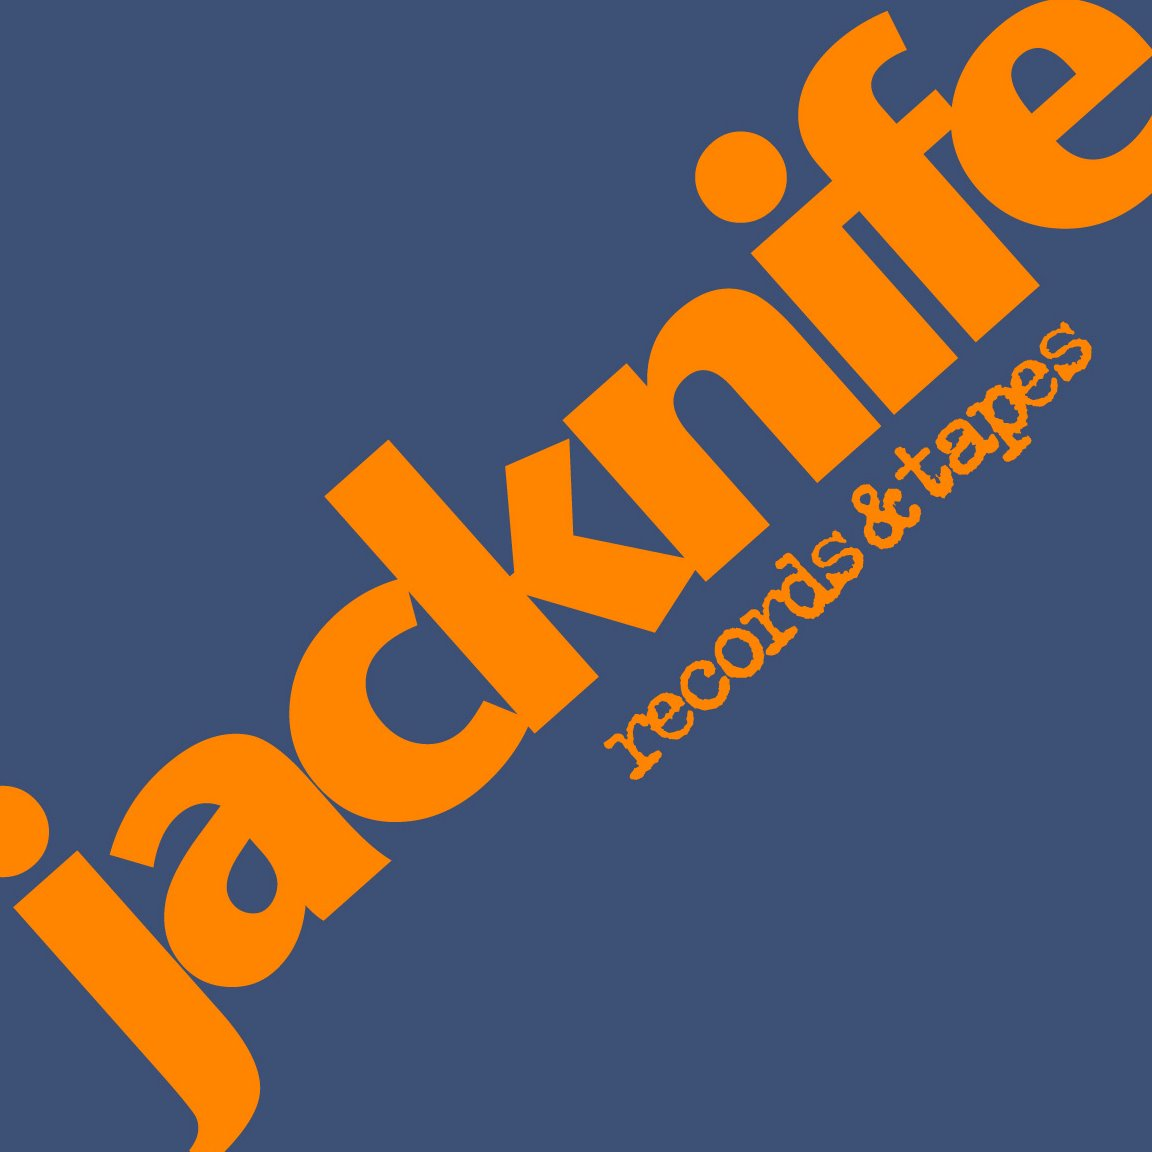 Jacknife Records    3149 Glendale Blvd.     Los Angles, CA 90039     https://www.facebook.com/JacknifeRecords